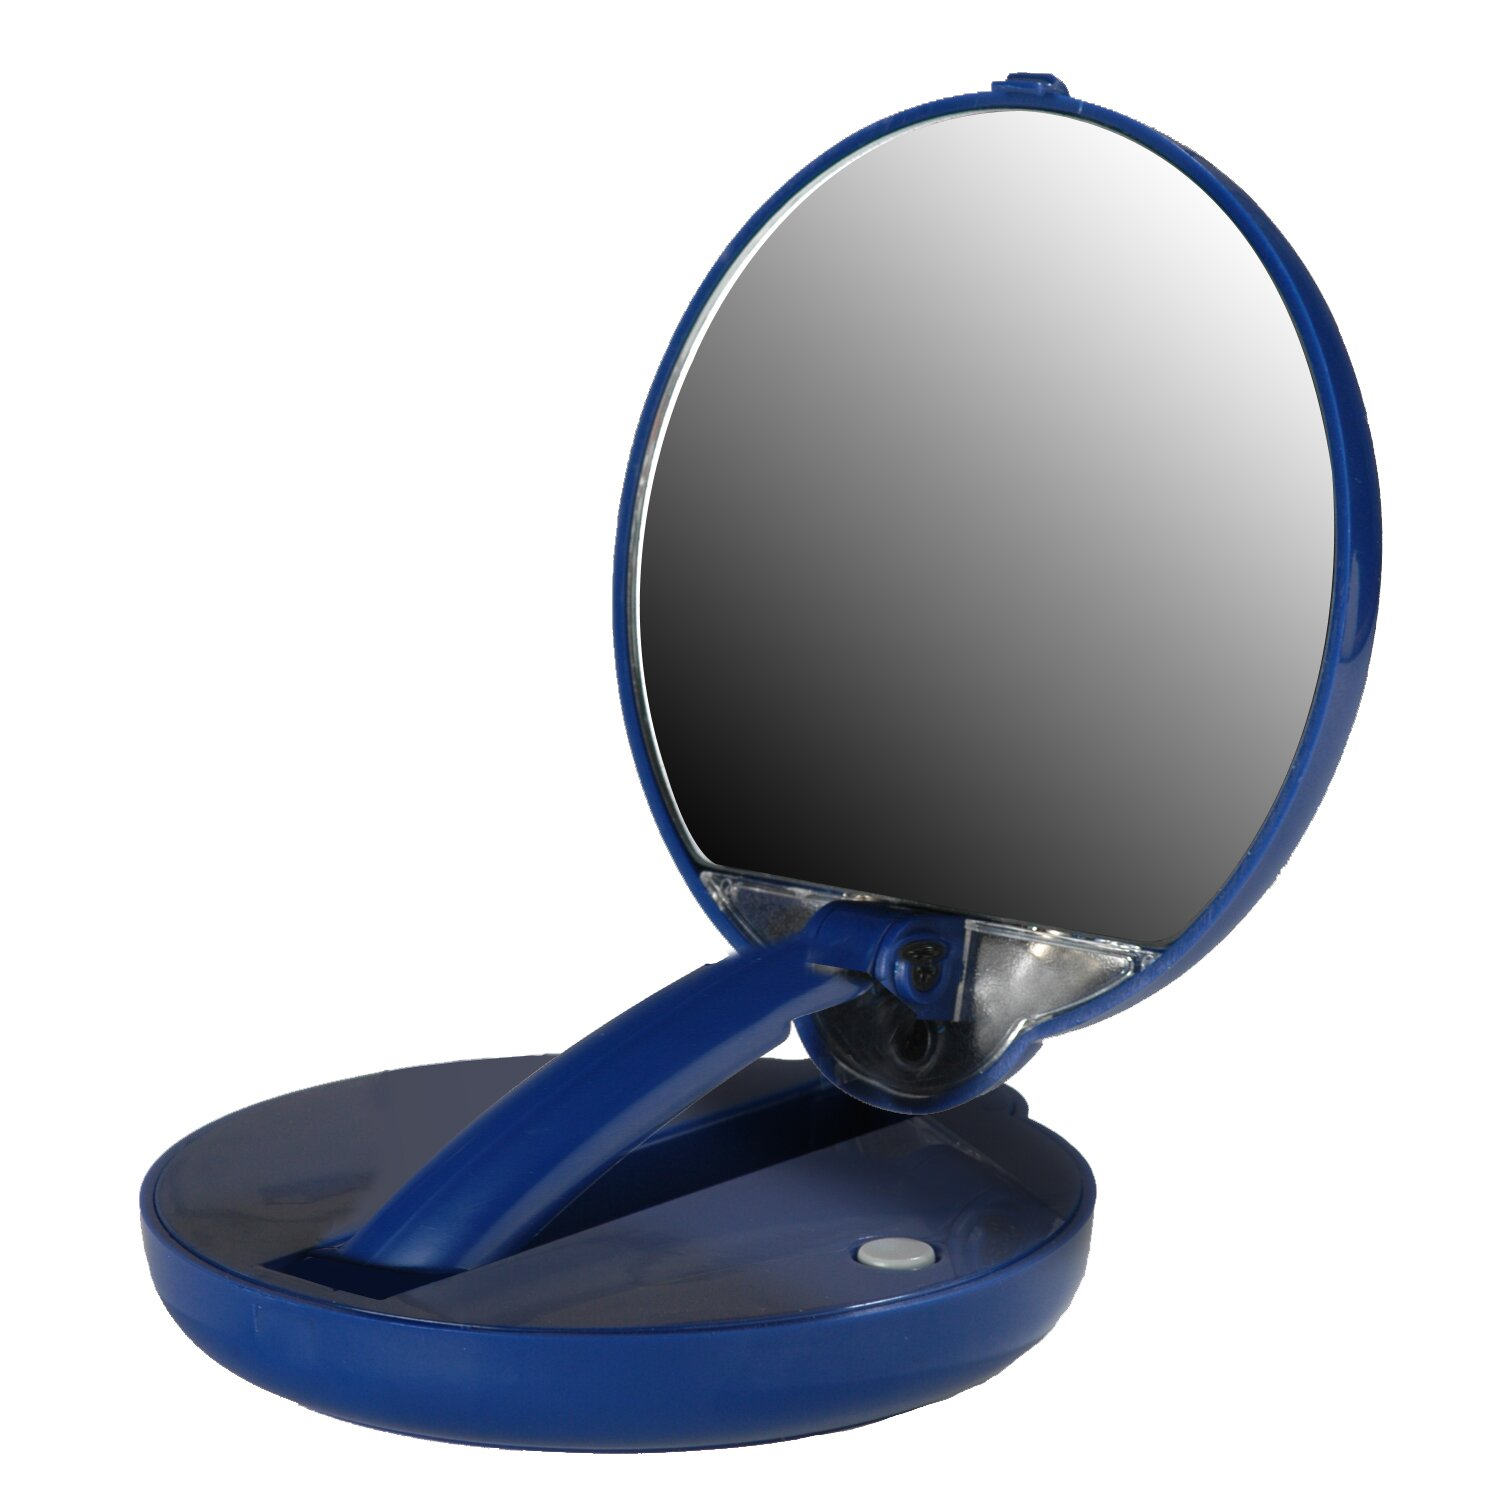 Floxite 15x Lighted Adjustable Compact Mirror Amp Reviews